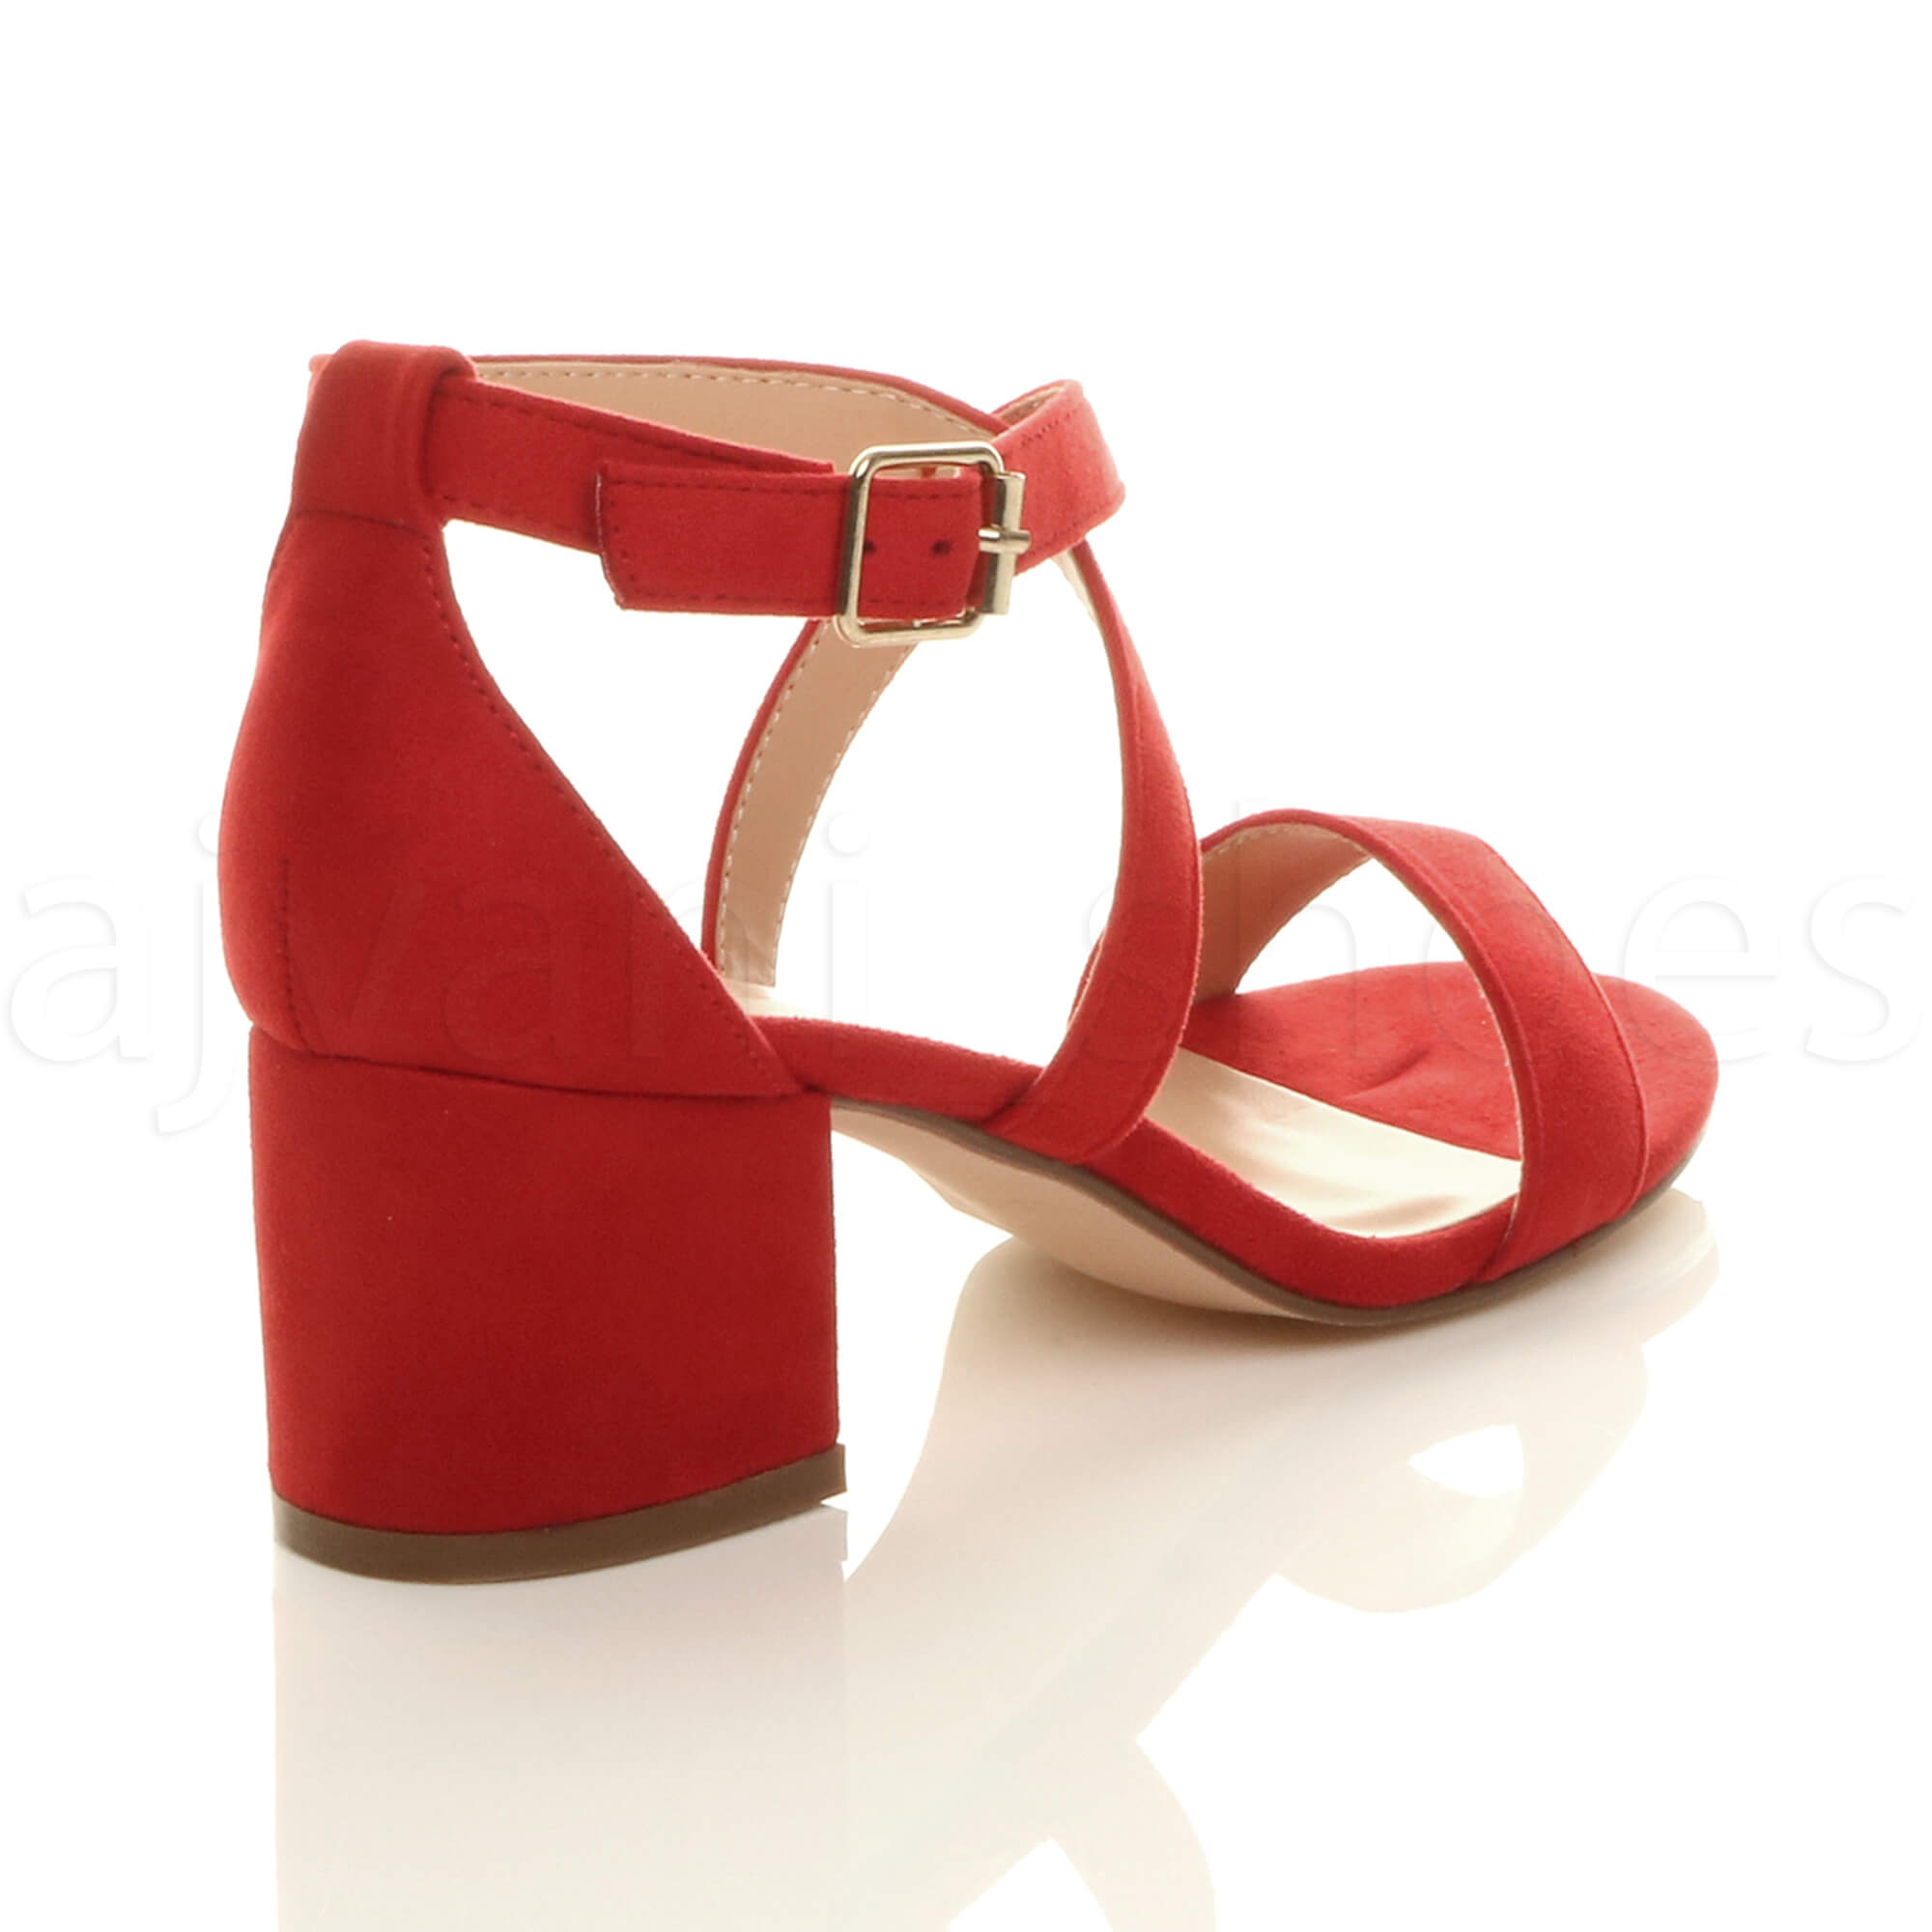 WOMENS-LADIES-MID-LOW-BLOCK-HEEL-CROSS-STRAPS-PARTY-STRAPPY-SANDALS-SHOES-SIZE thumbnail 64